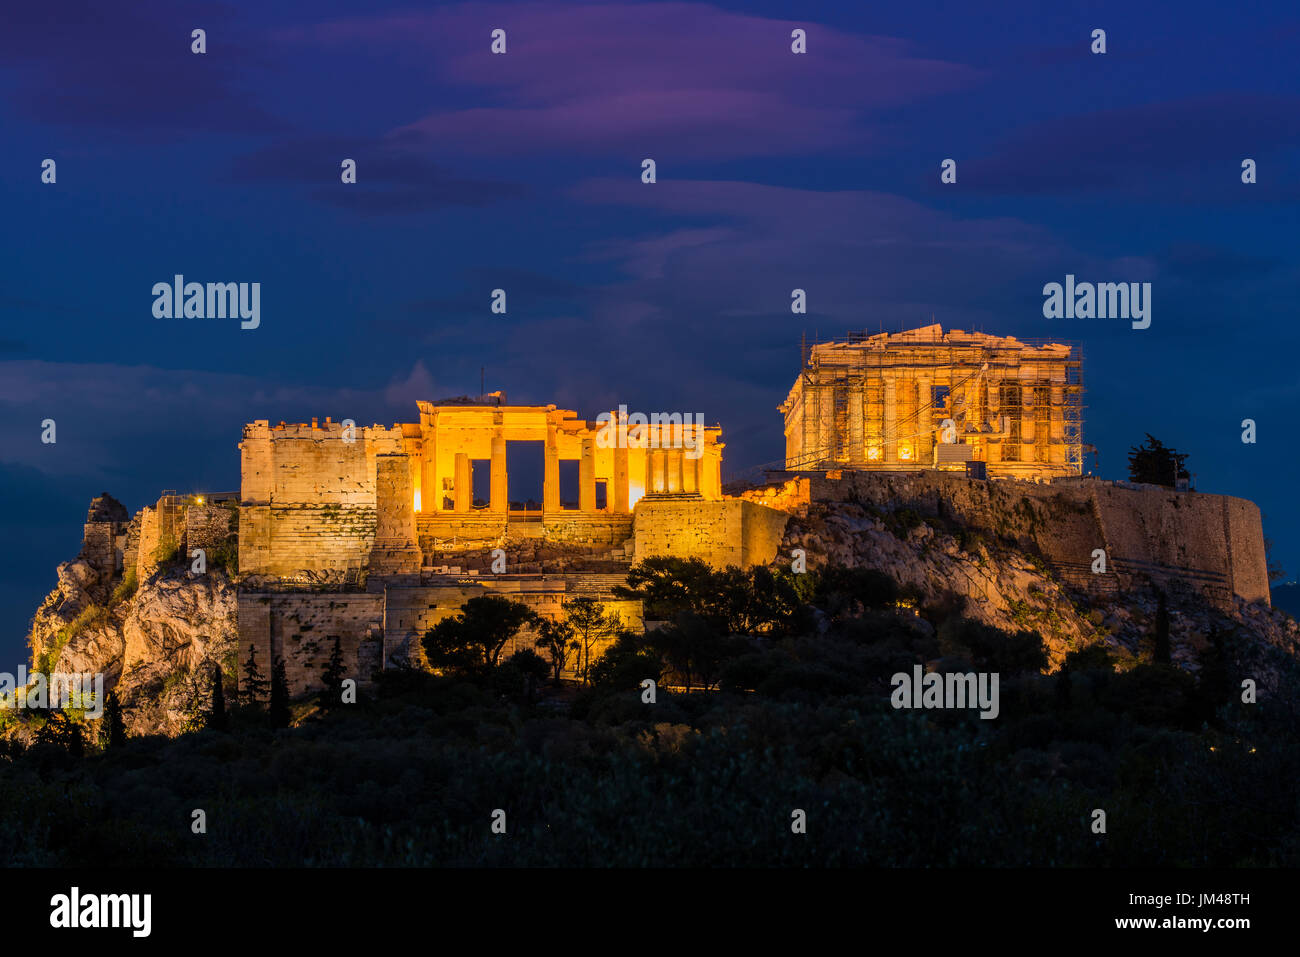 Night view of Acropolis, Athens, Attica, Greece - Stock Image